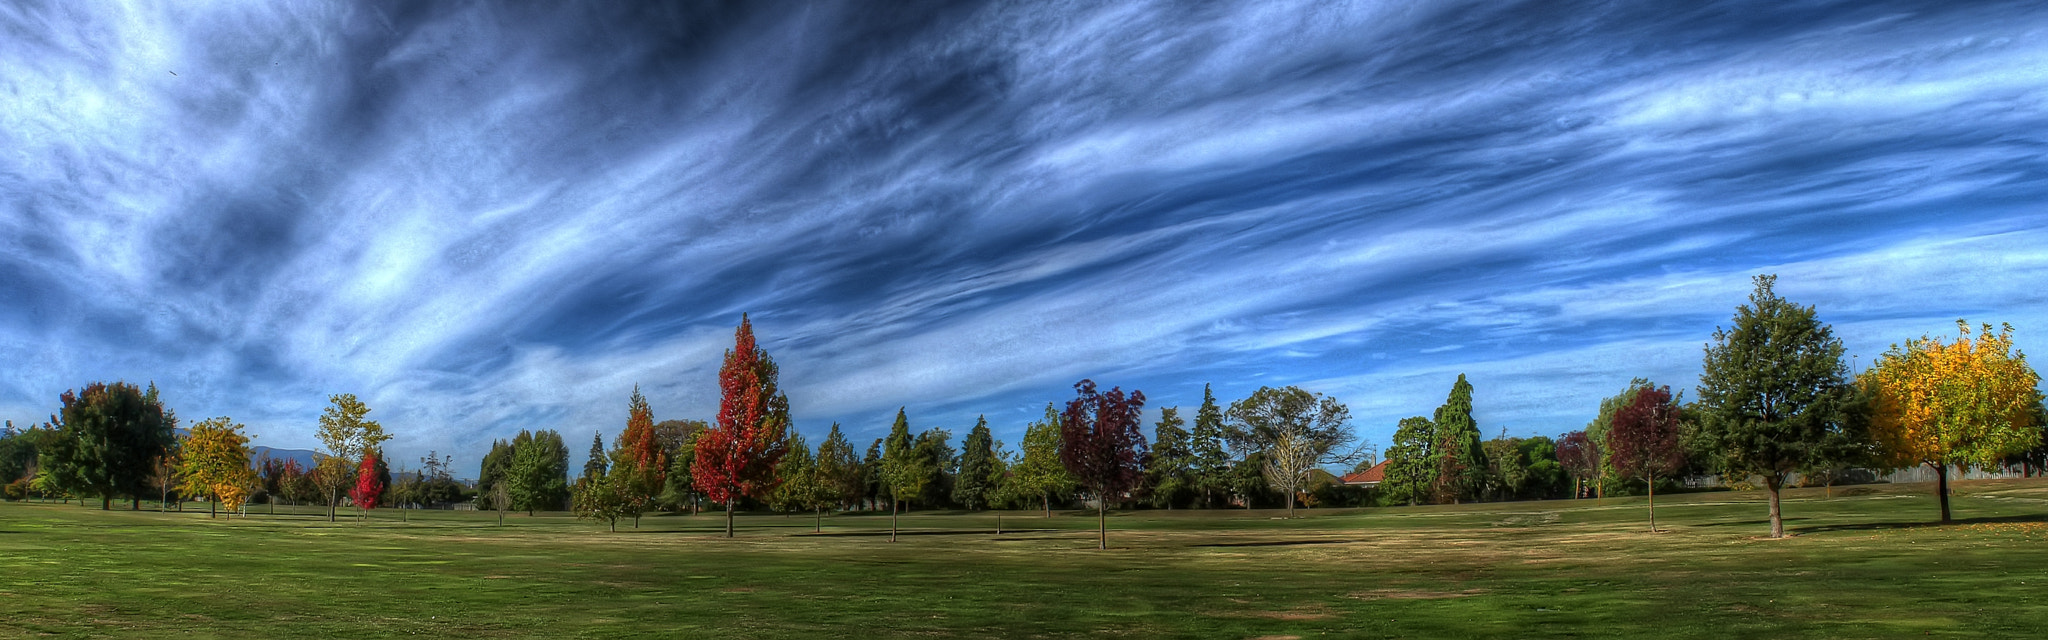 Photograph Spring Colors in HDR by Paul Huisman on 500px